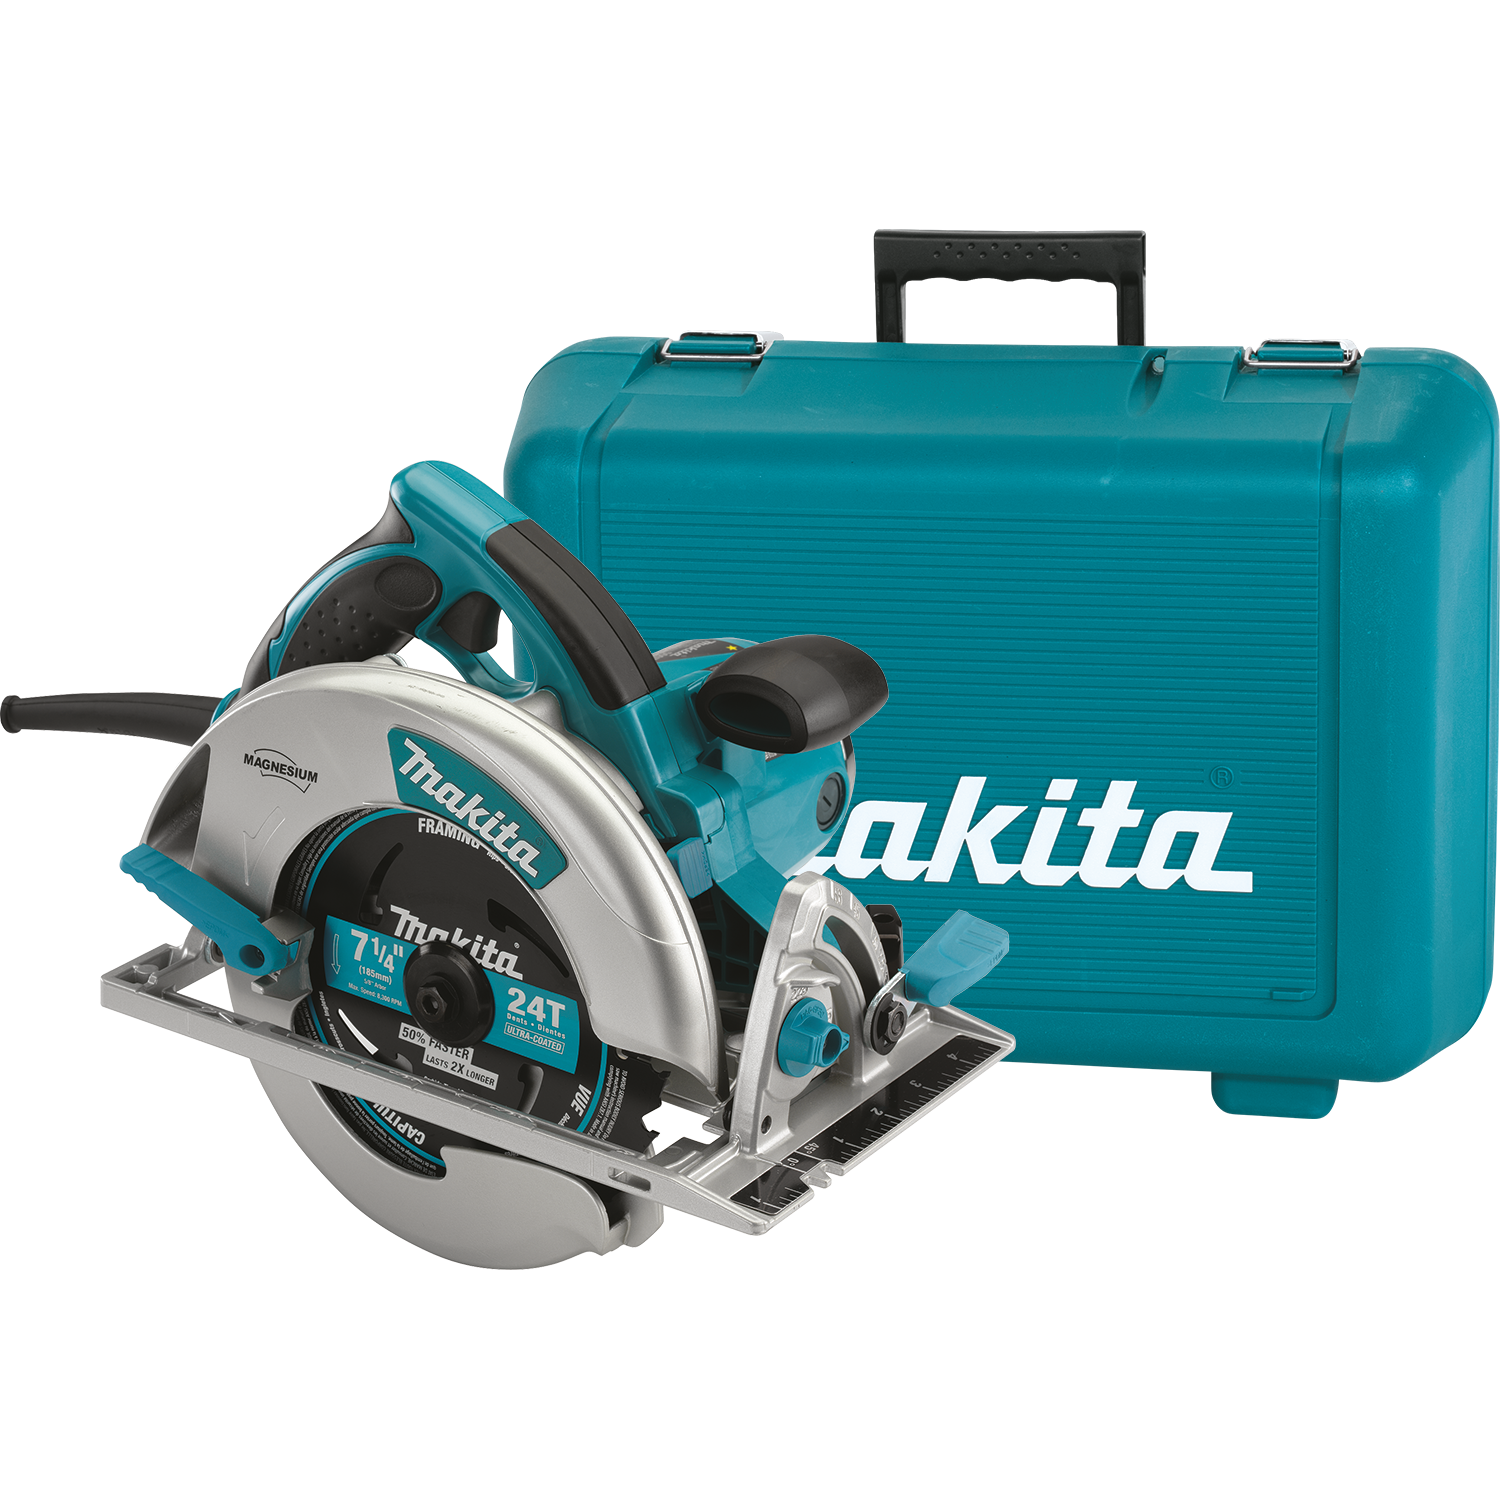 Makita usa product details 5007mg 5007mg greentooth Gallery